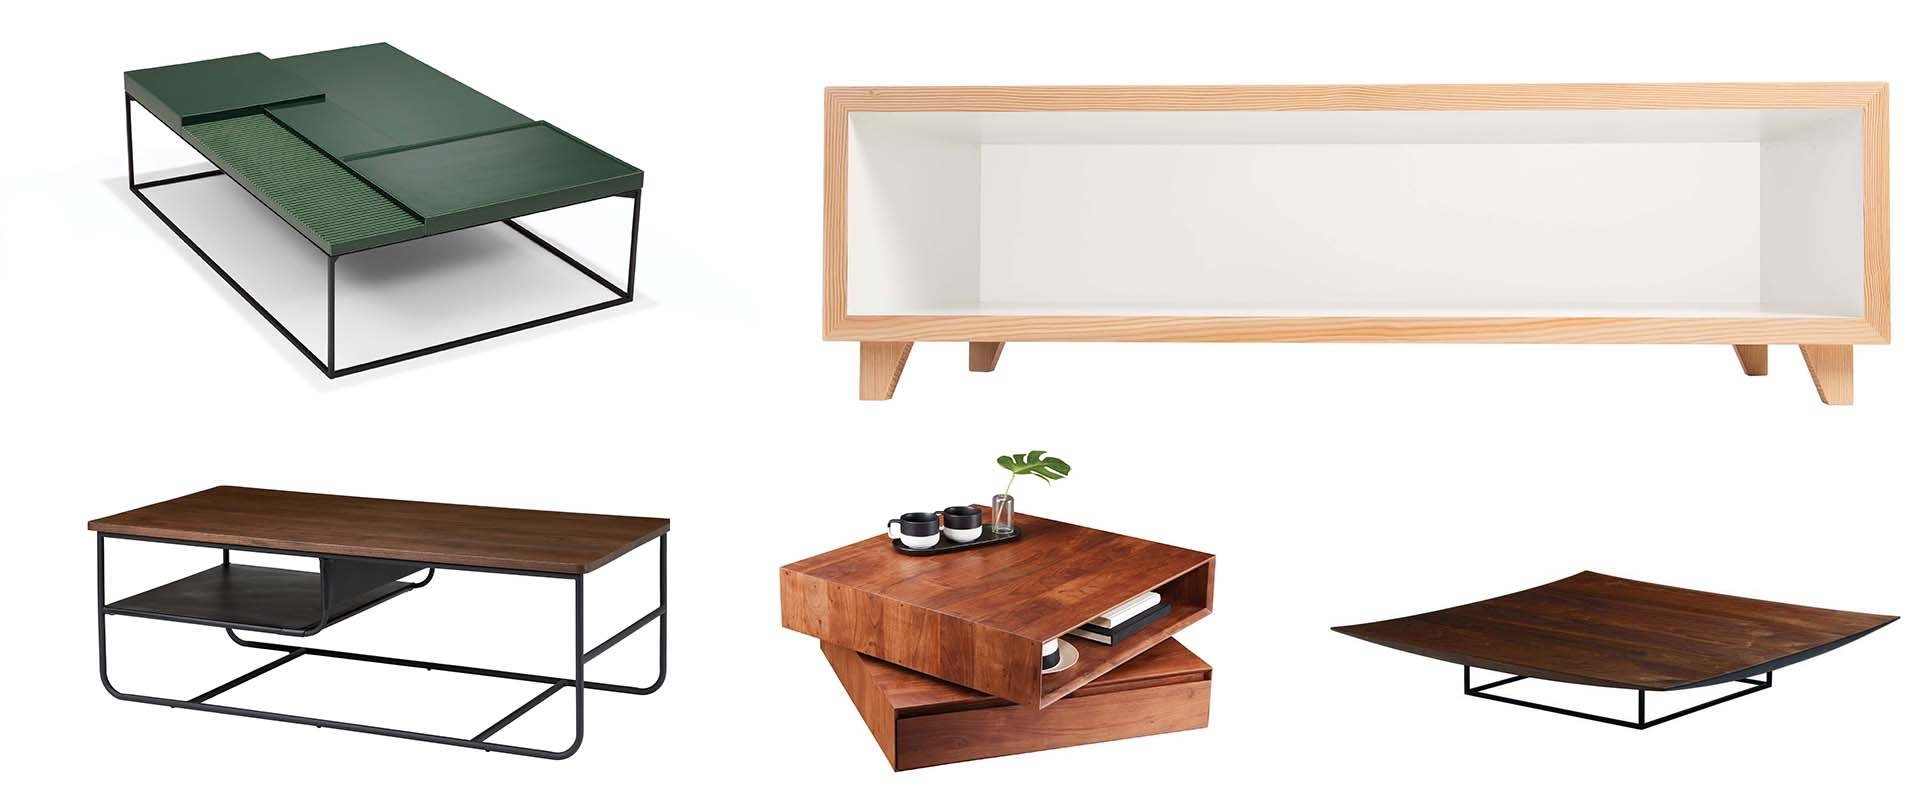 6 Scene-Stealing Coffee Tables We Love - Western Living Magazine regarding Spin Rotating Coffee Tables (Image 3 of 30)